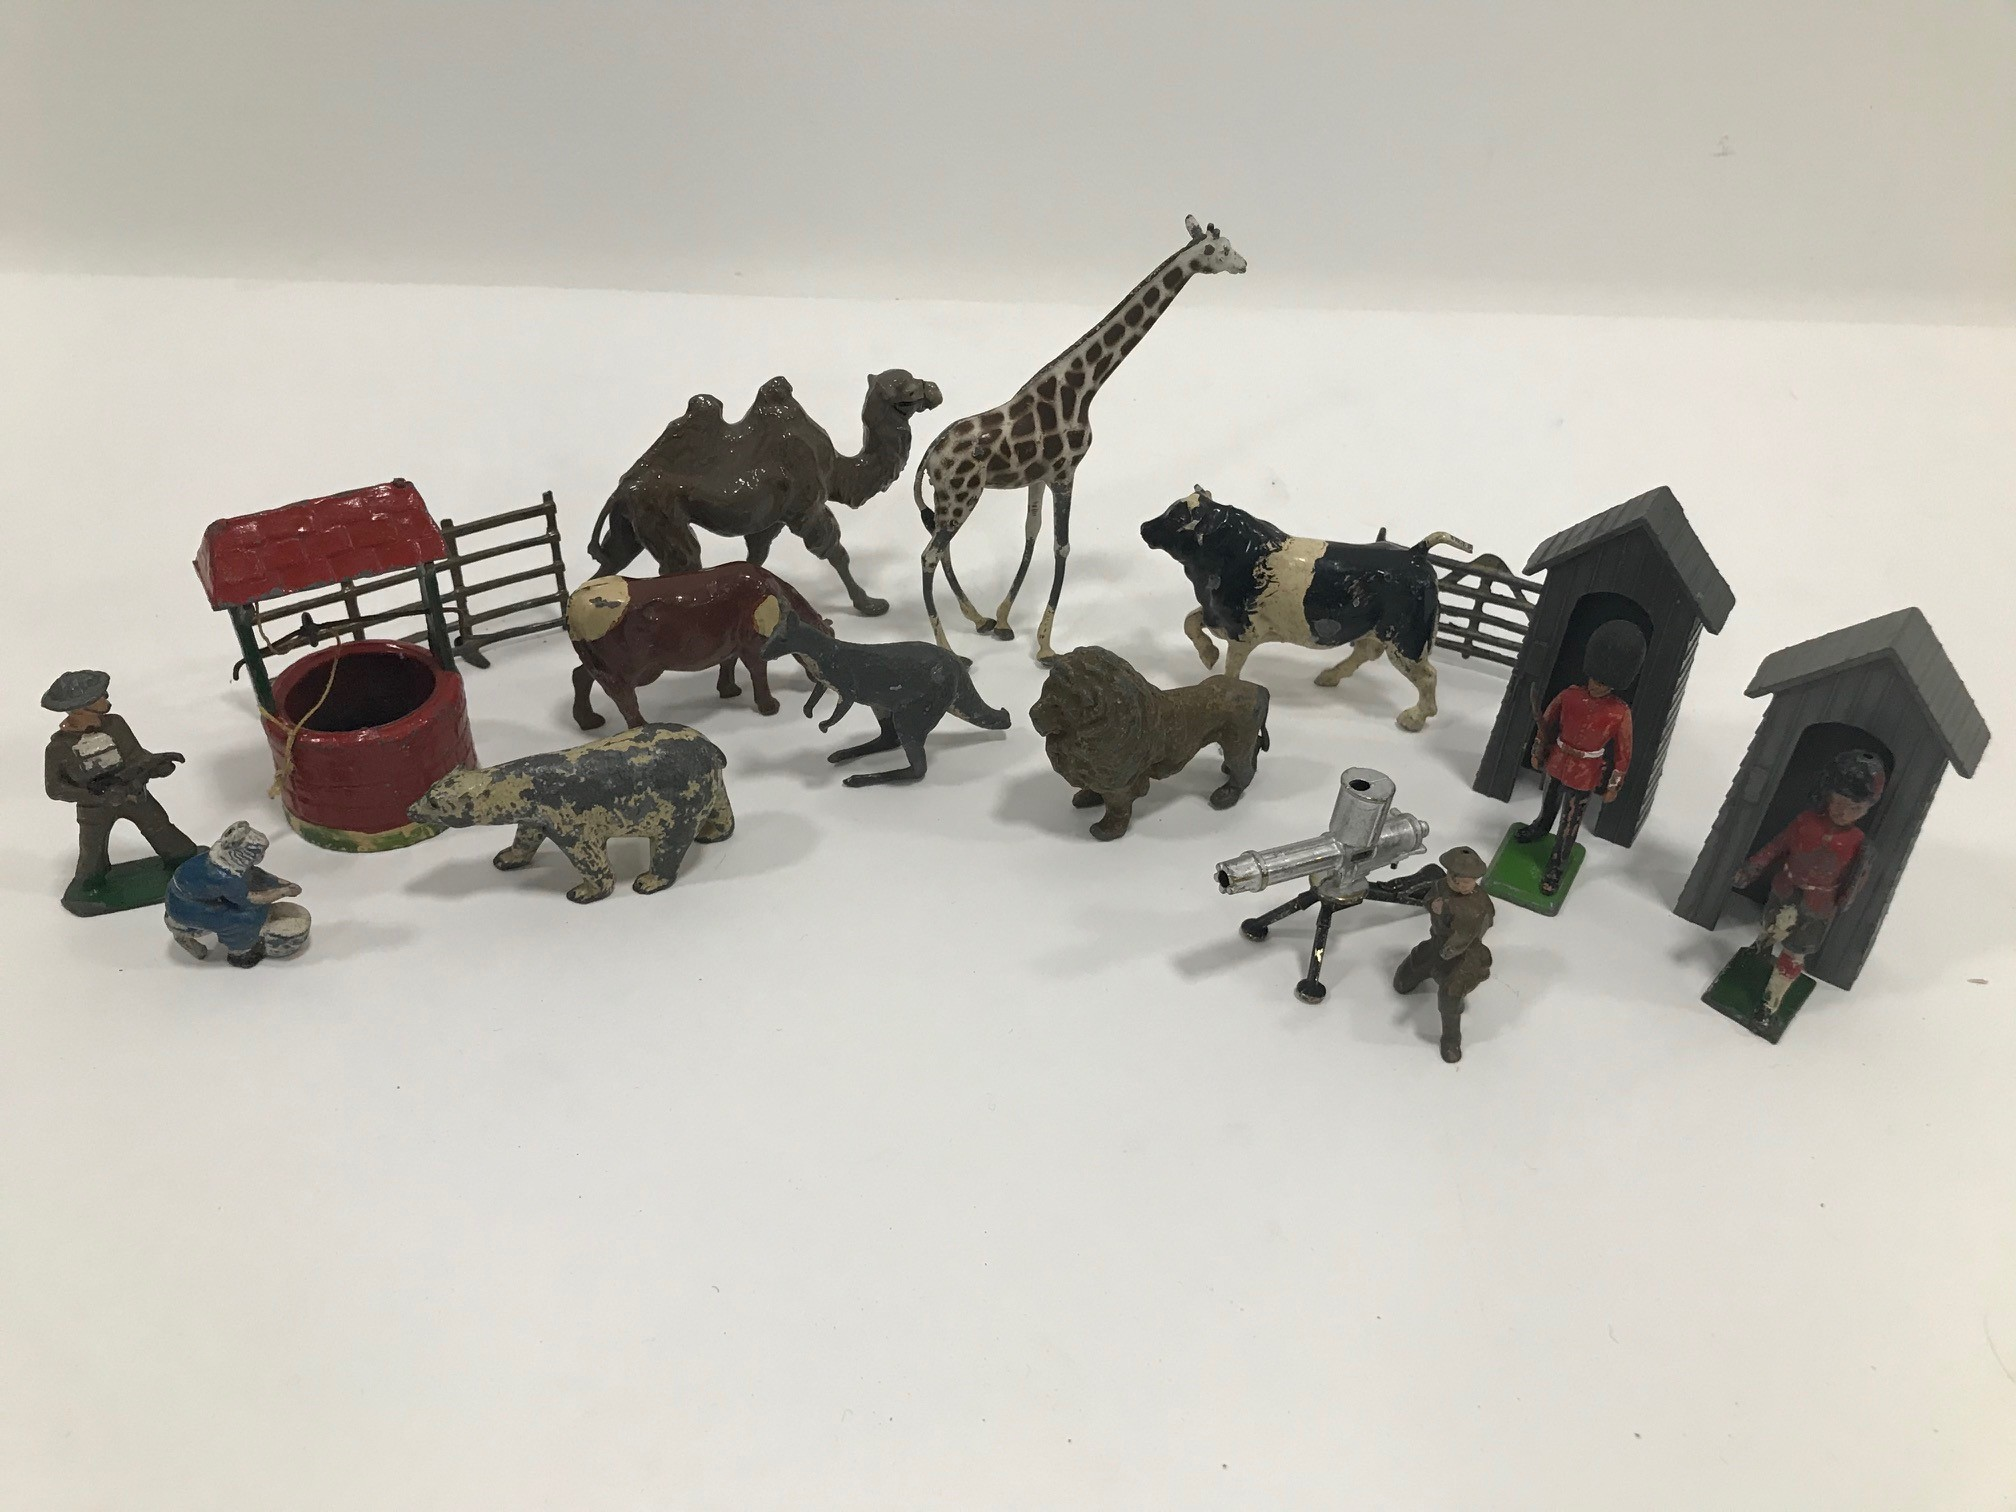 A collection of Britains and other lead and metal figures and other items, with animals, civilian